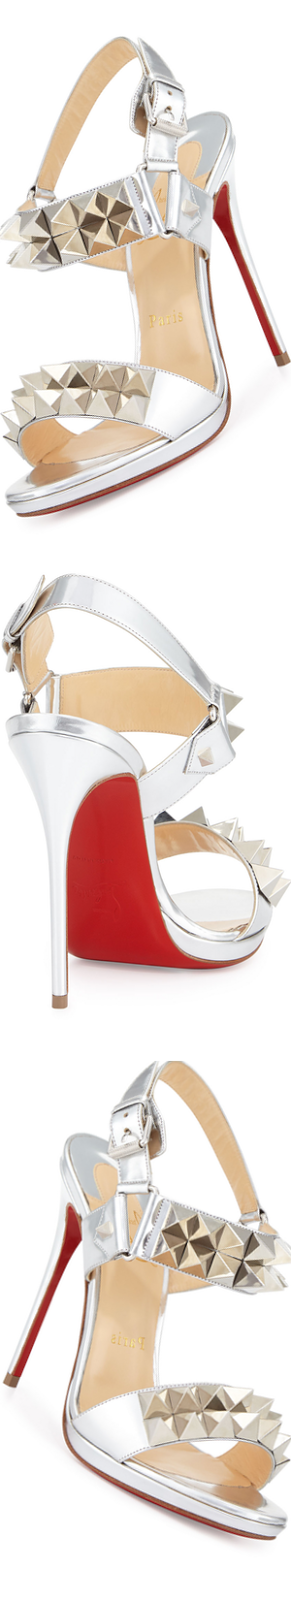 Christian Louboutin Miziggoo Spiked Two-Band Red Sole Sandal, Silver